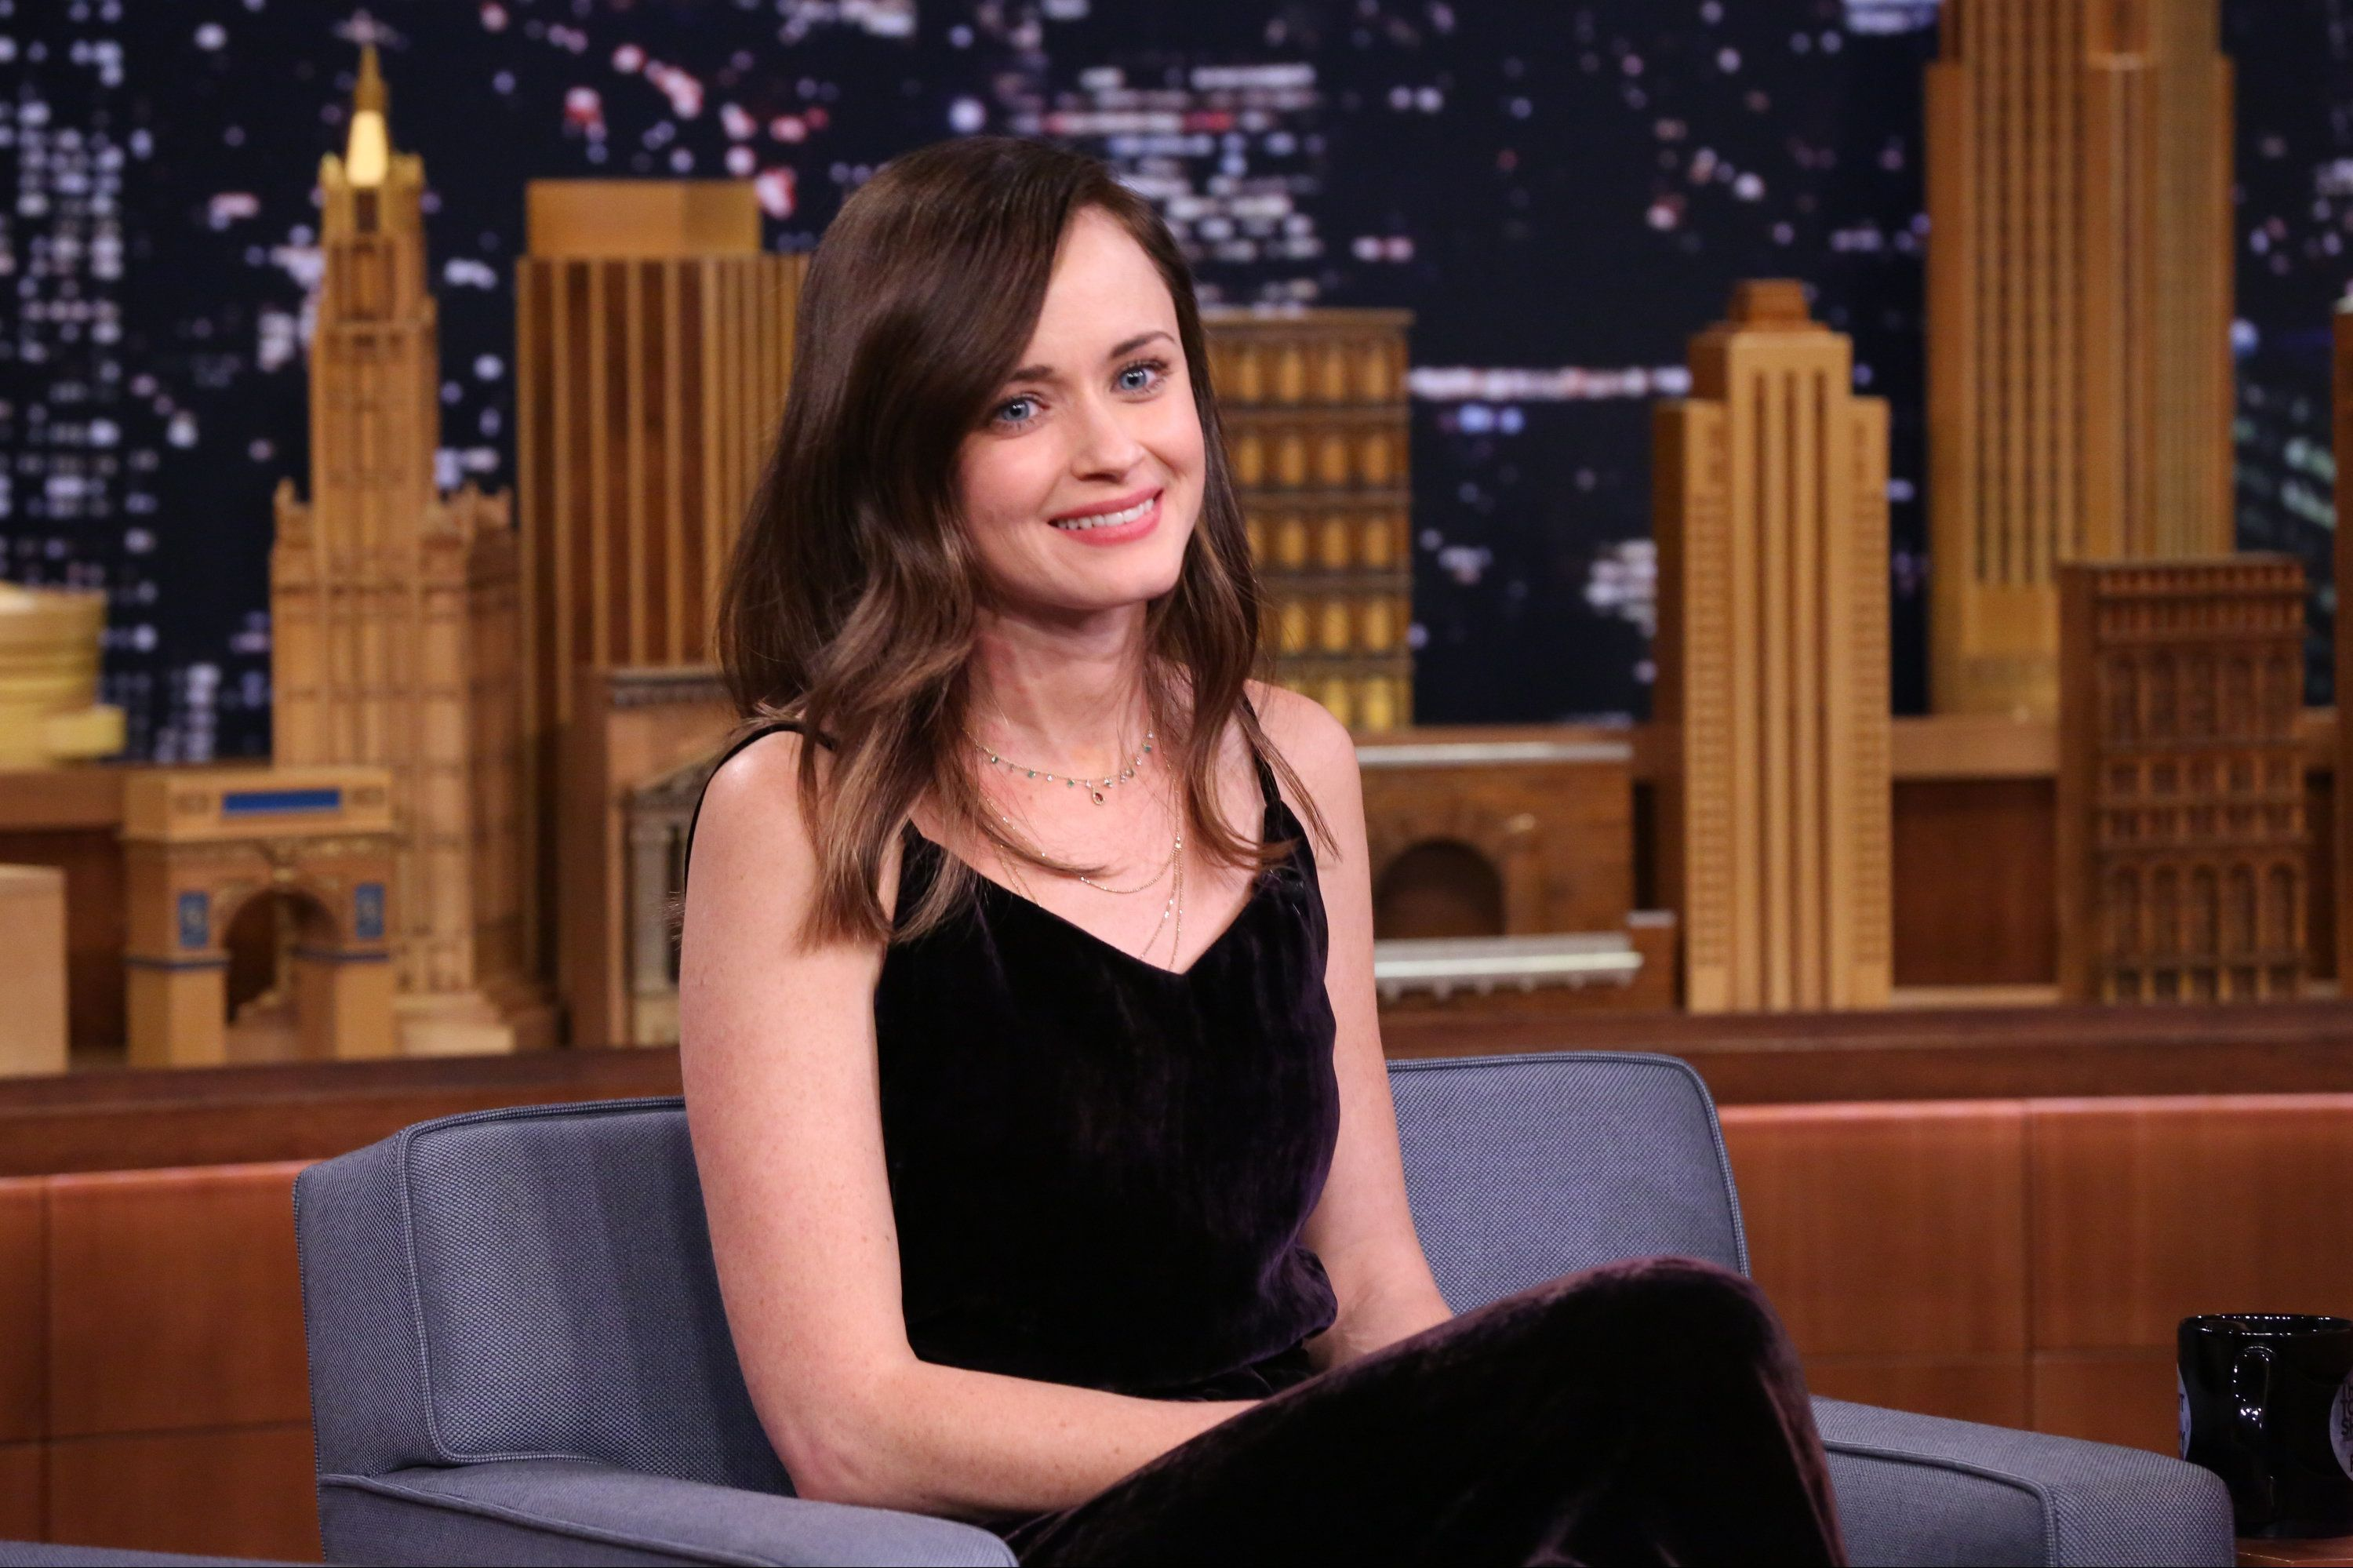 THE TONIGHT SHOW STARRING JIMMY FALLON -- Episode 0579 -- Pictured: Actress Alexis Bledel during an interview on November 28, 2016 -- (Photo by: Andrew Lipovsky/NBC/NBCU Photo Bank via Getty Images)